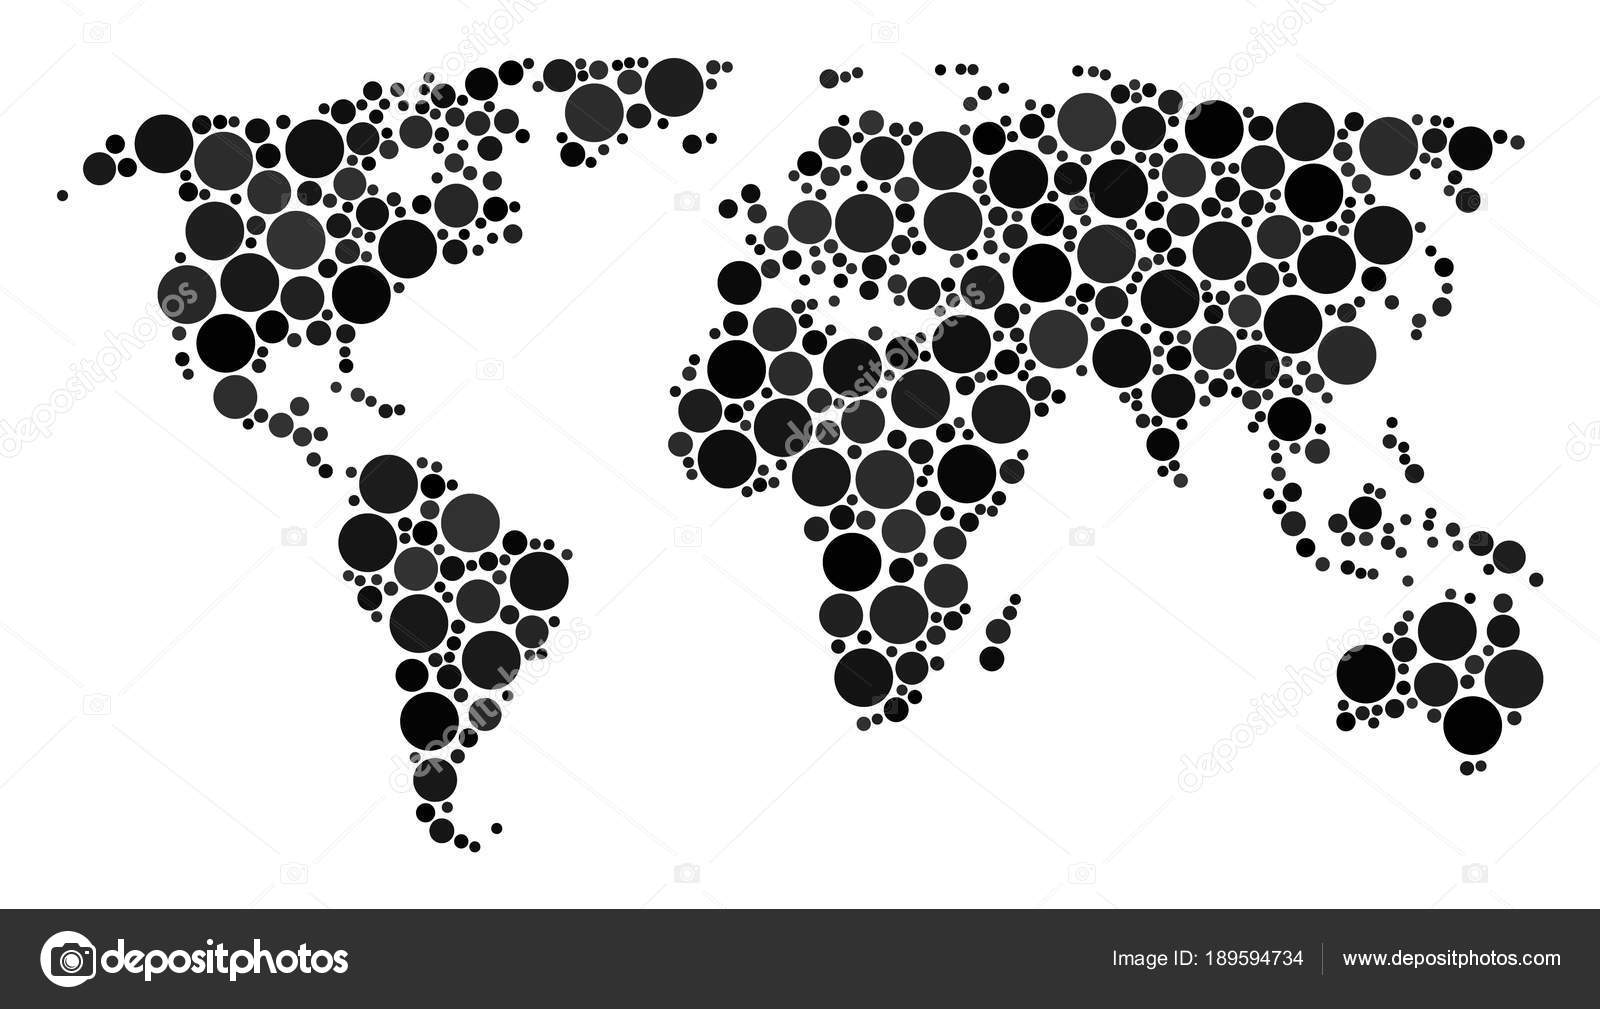 World map collage of dots stock vector ahasoft 189594734 world map collage of dots stock vector gumiabroncs Image collections